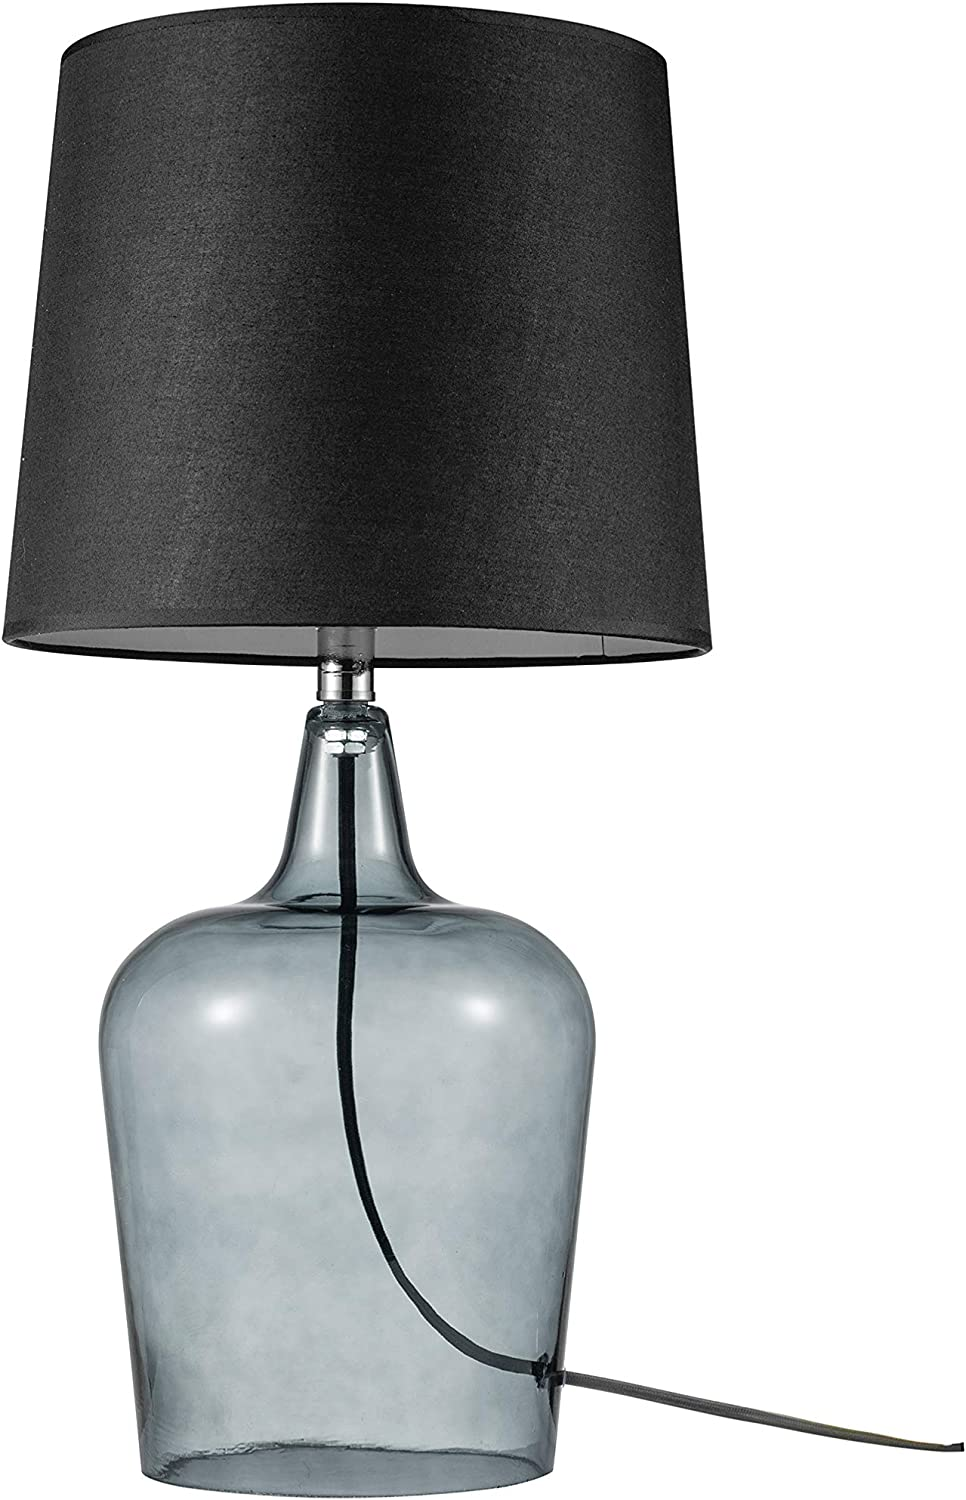 "Amazon Brand - Ravenna Home Single-Light Modern Table Lamp with Smoked Glass Base and Black Shade, LED Bulb Included, 24""H"